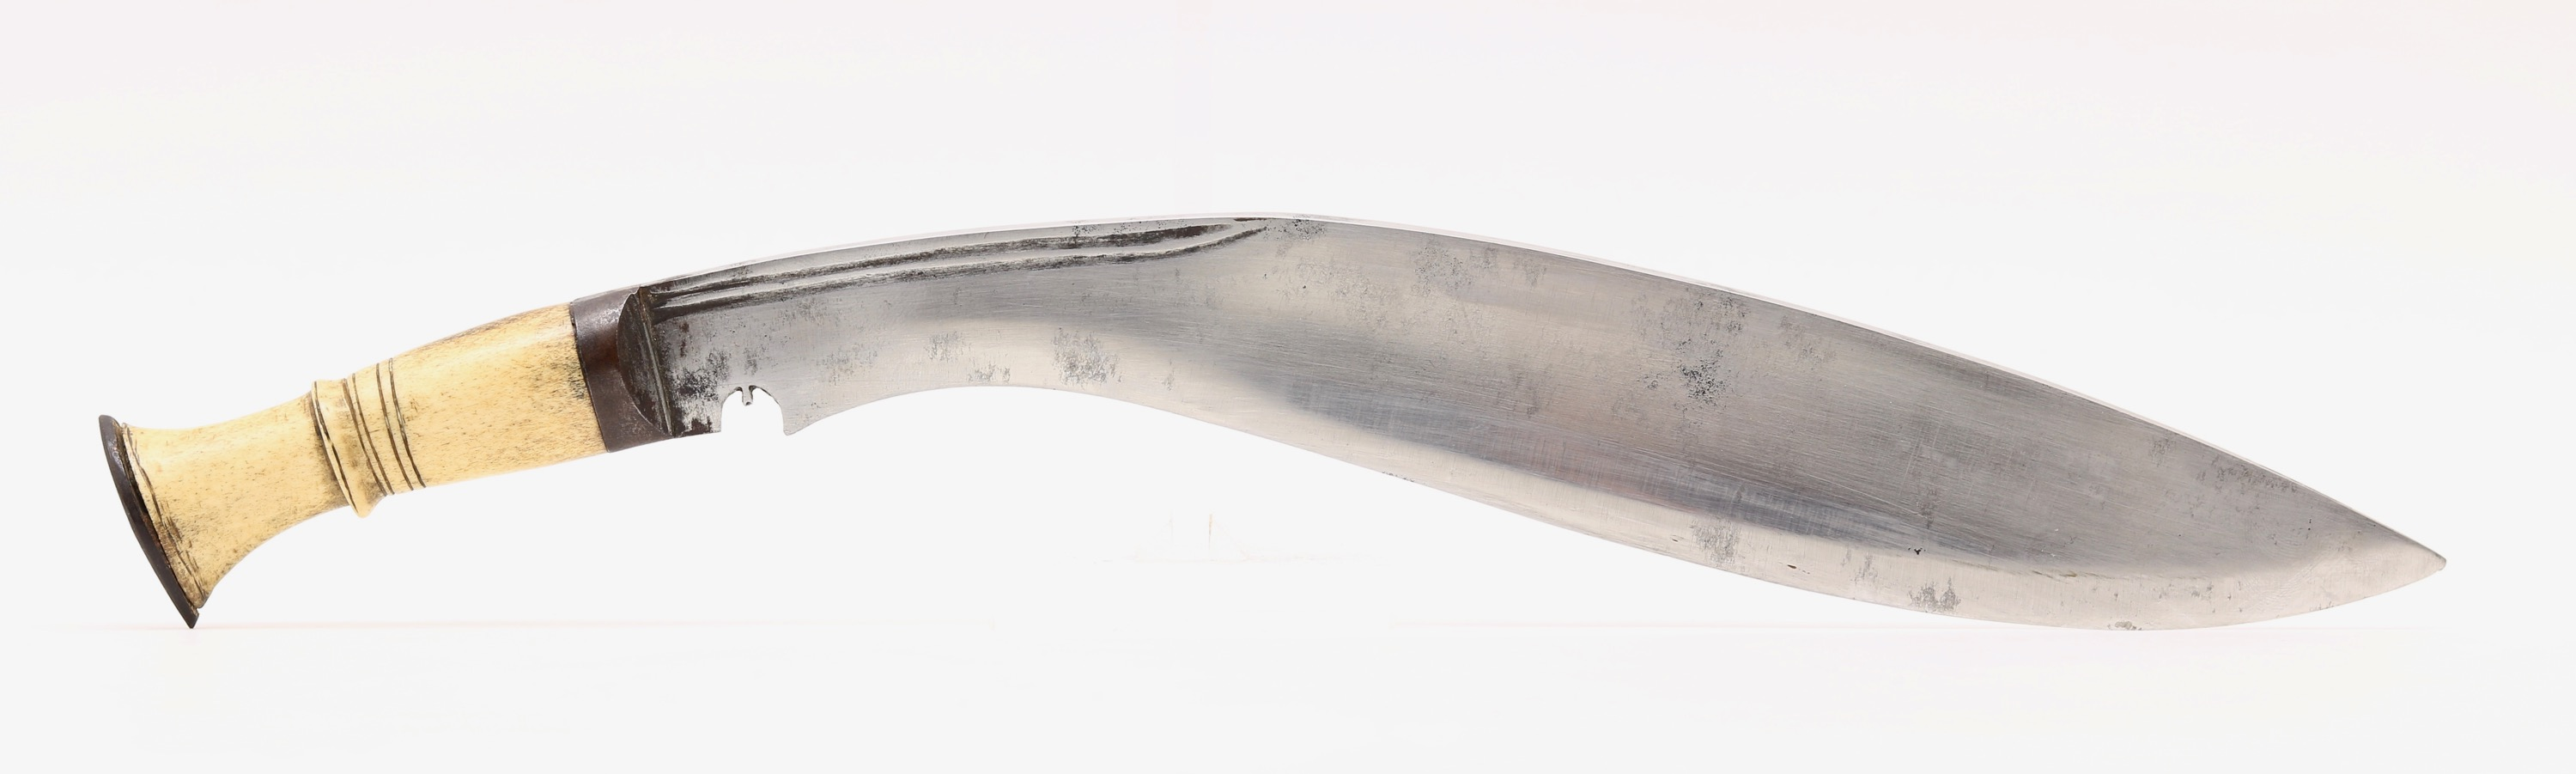 A khukuri without grooves